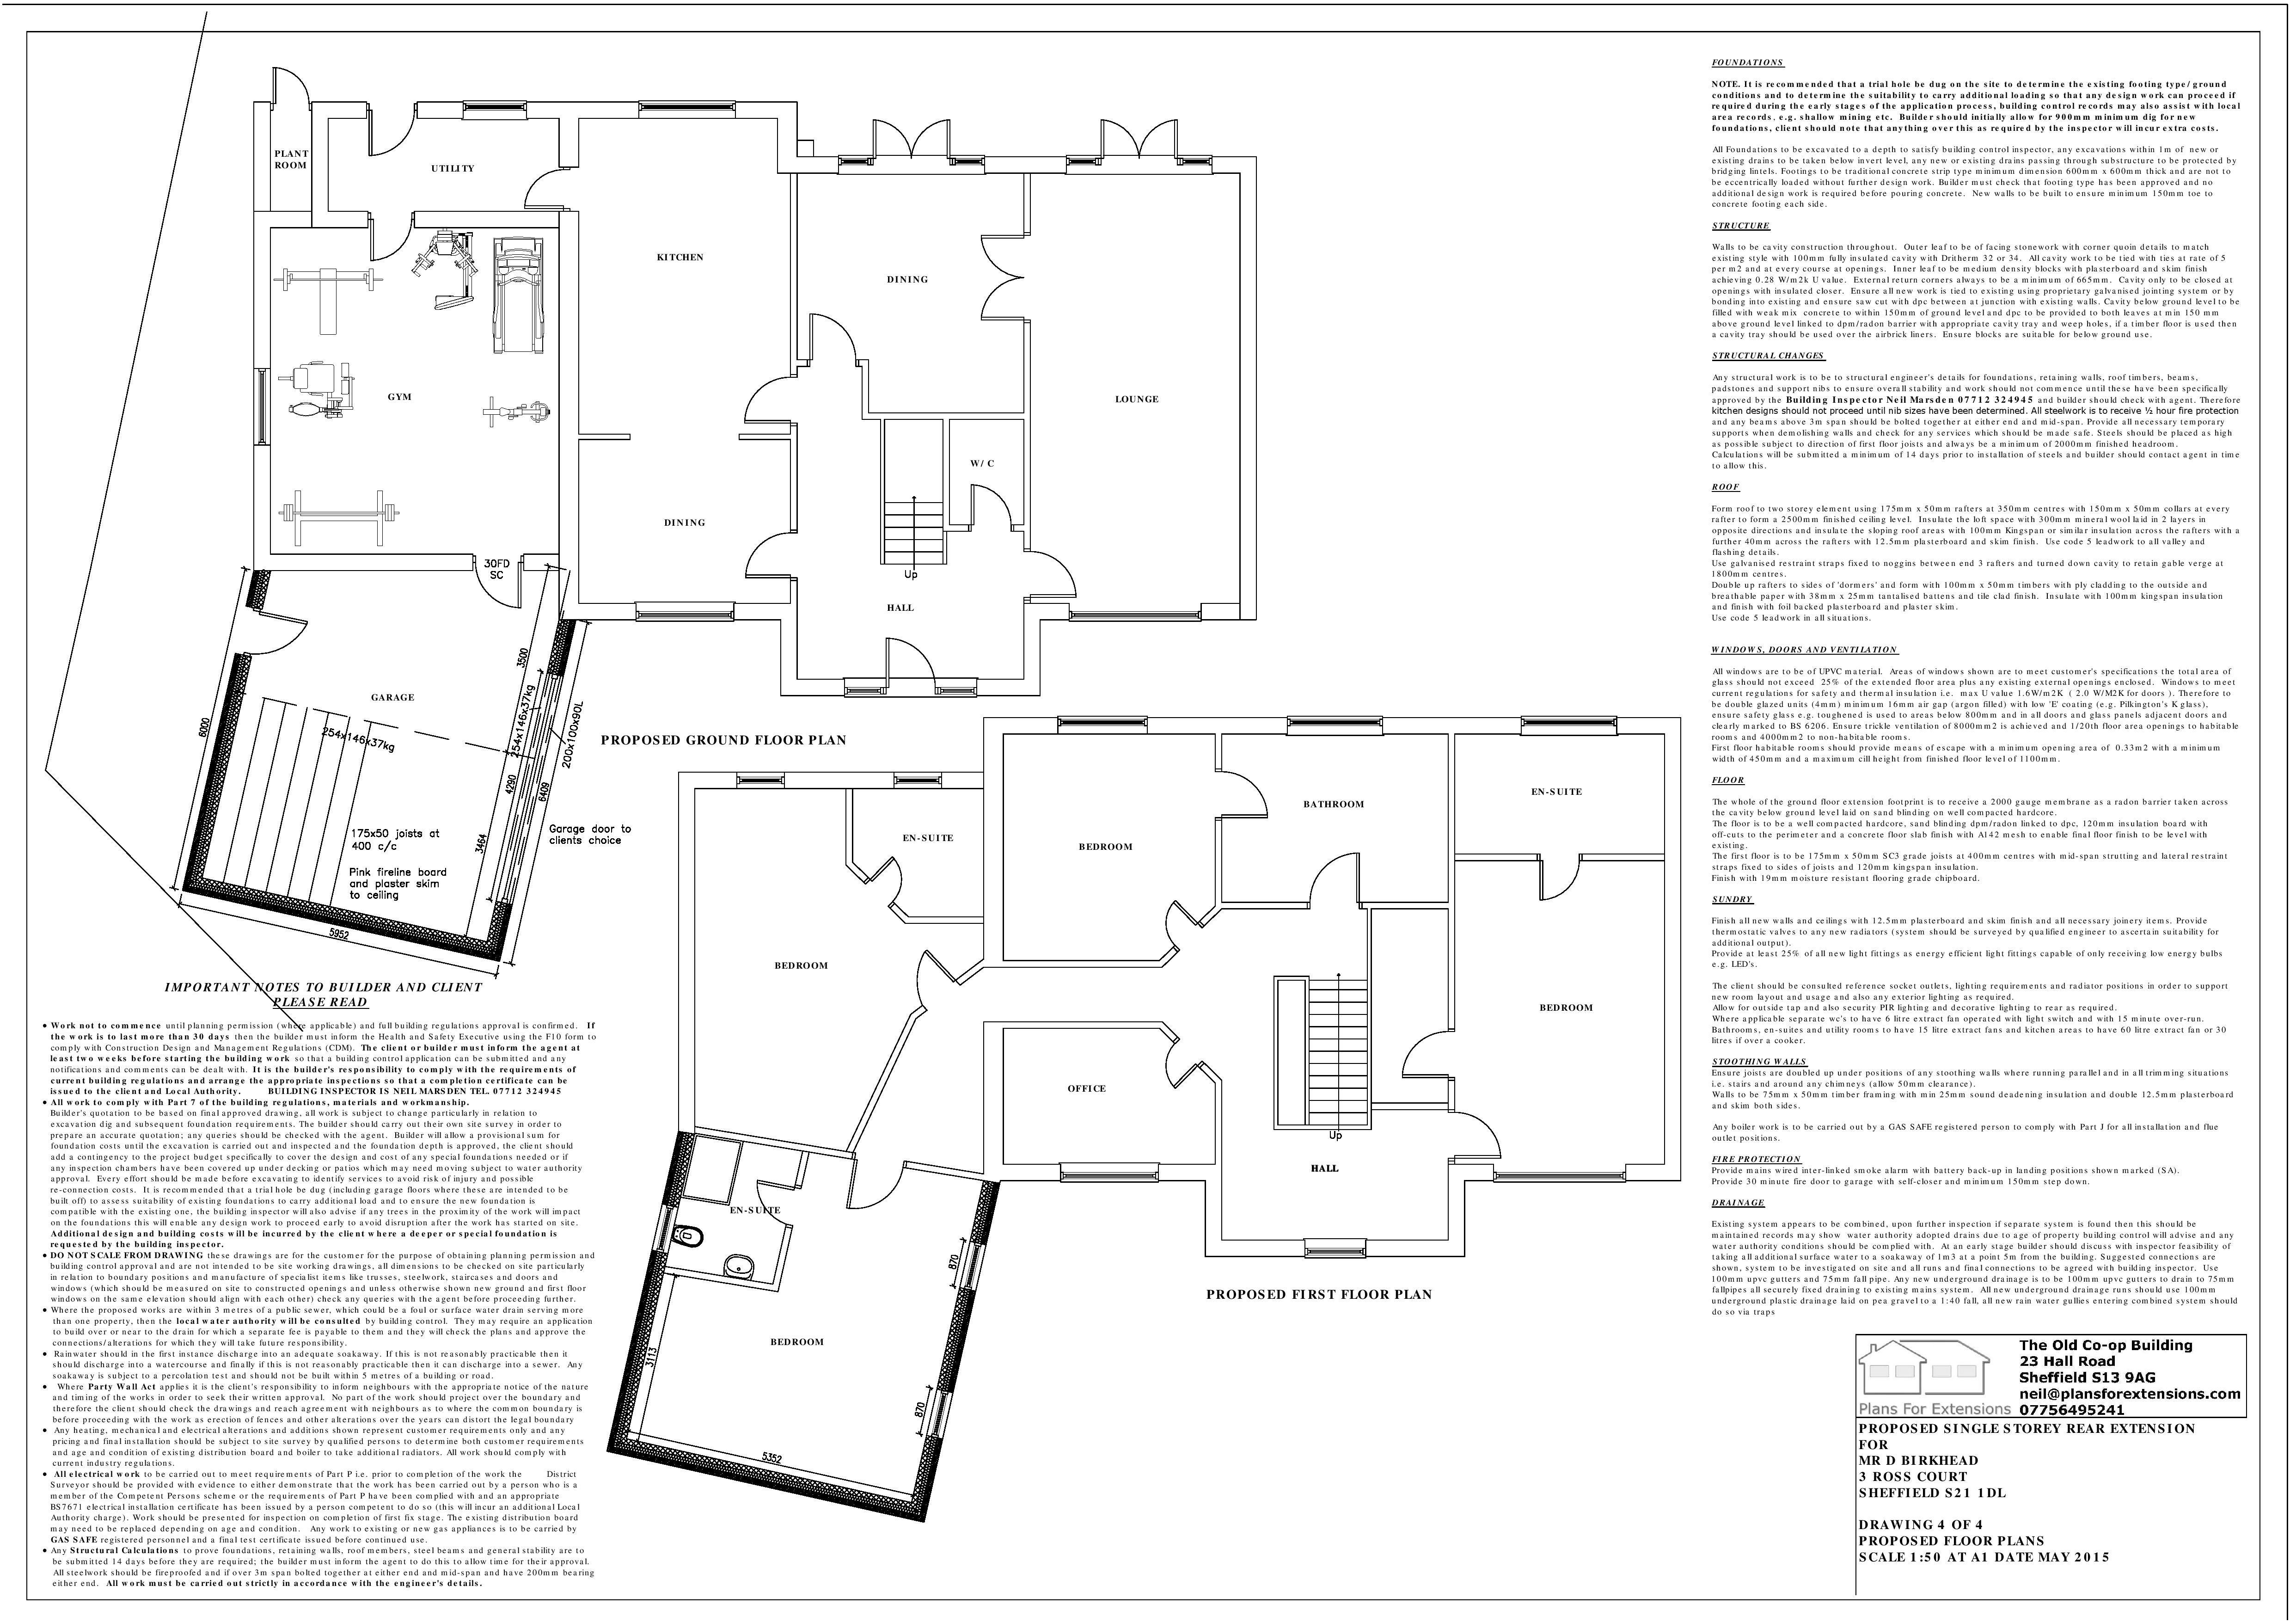 Plans - Proposed Floor Plans